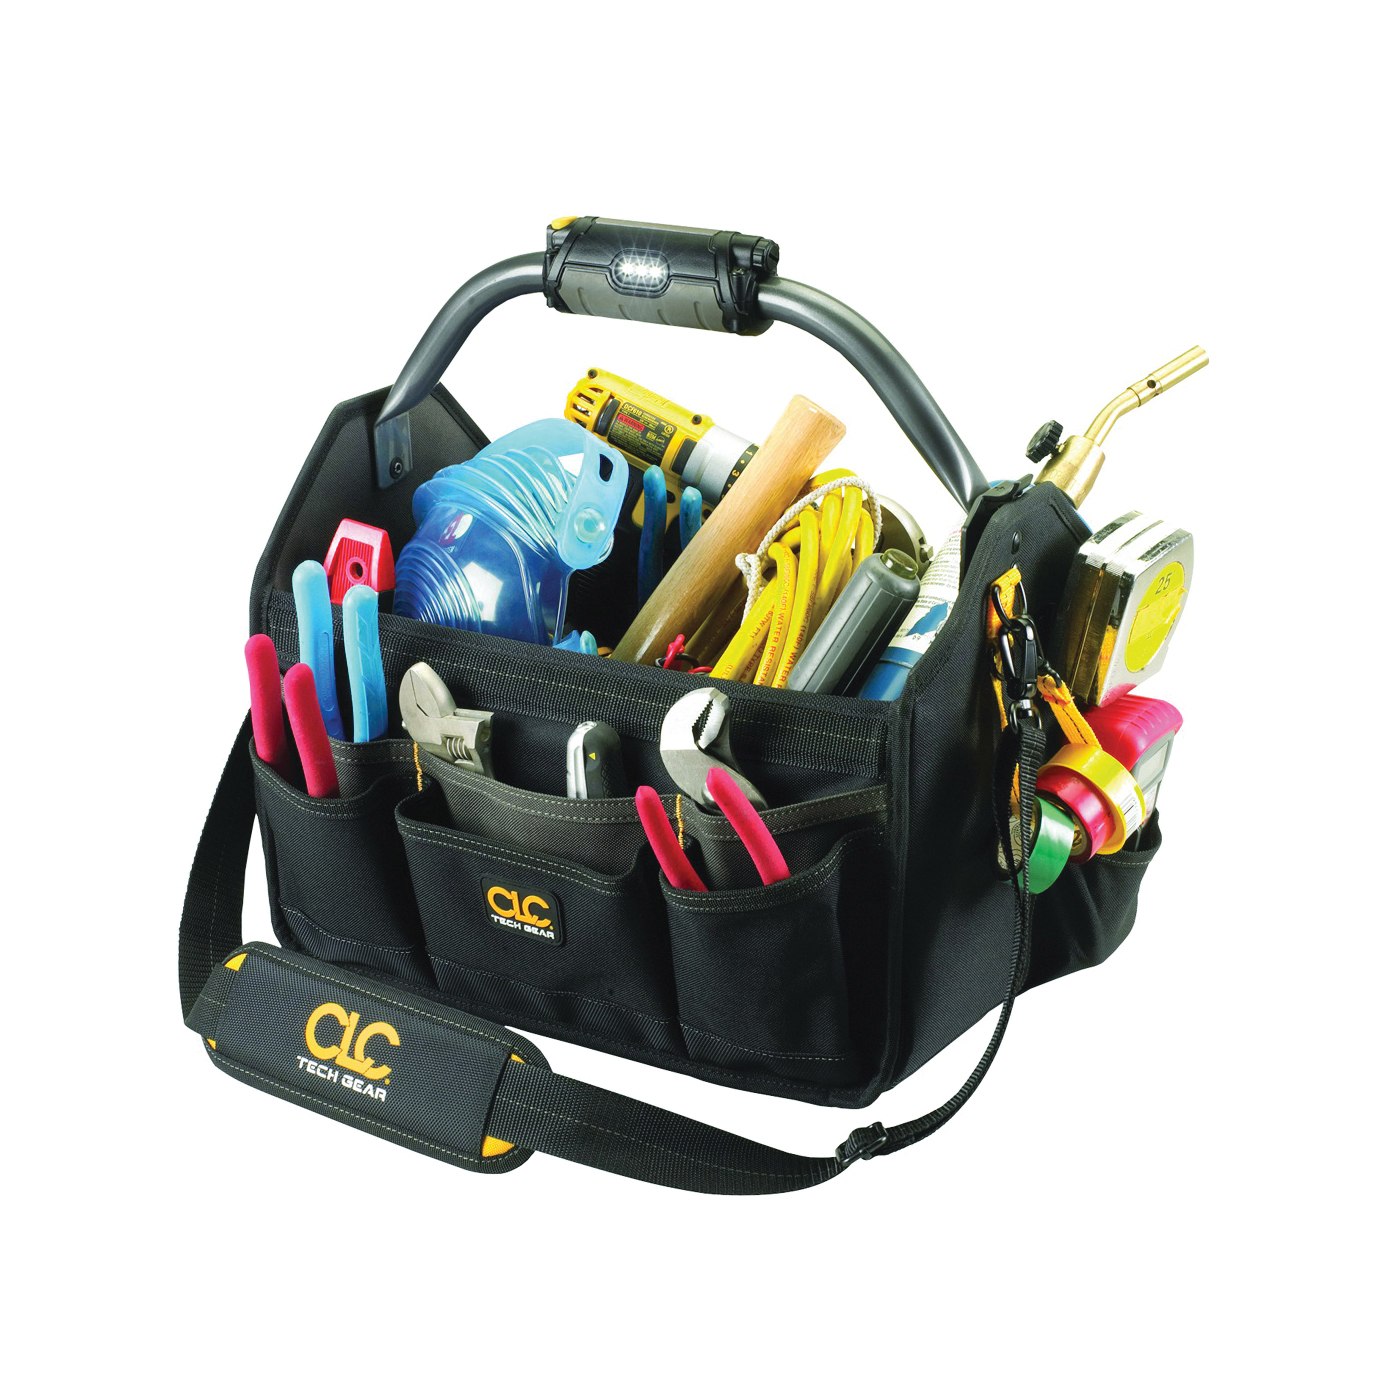 Picture of CLC Tech Gear L234 Open Top Tool Carrier with Handle, 8-1/2 in W, 11-1/2 in D, 15 in H, 22 -Pocket, Polyester